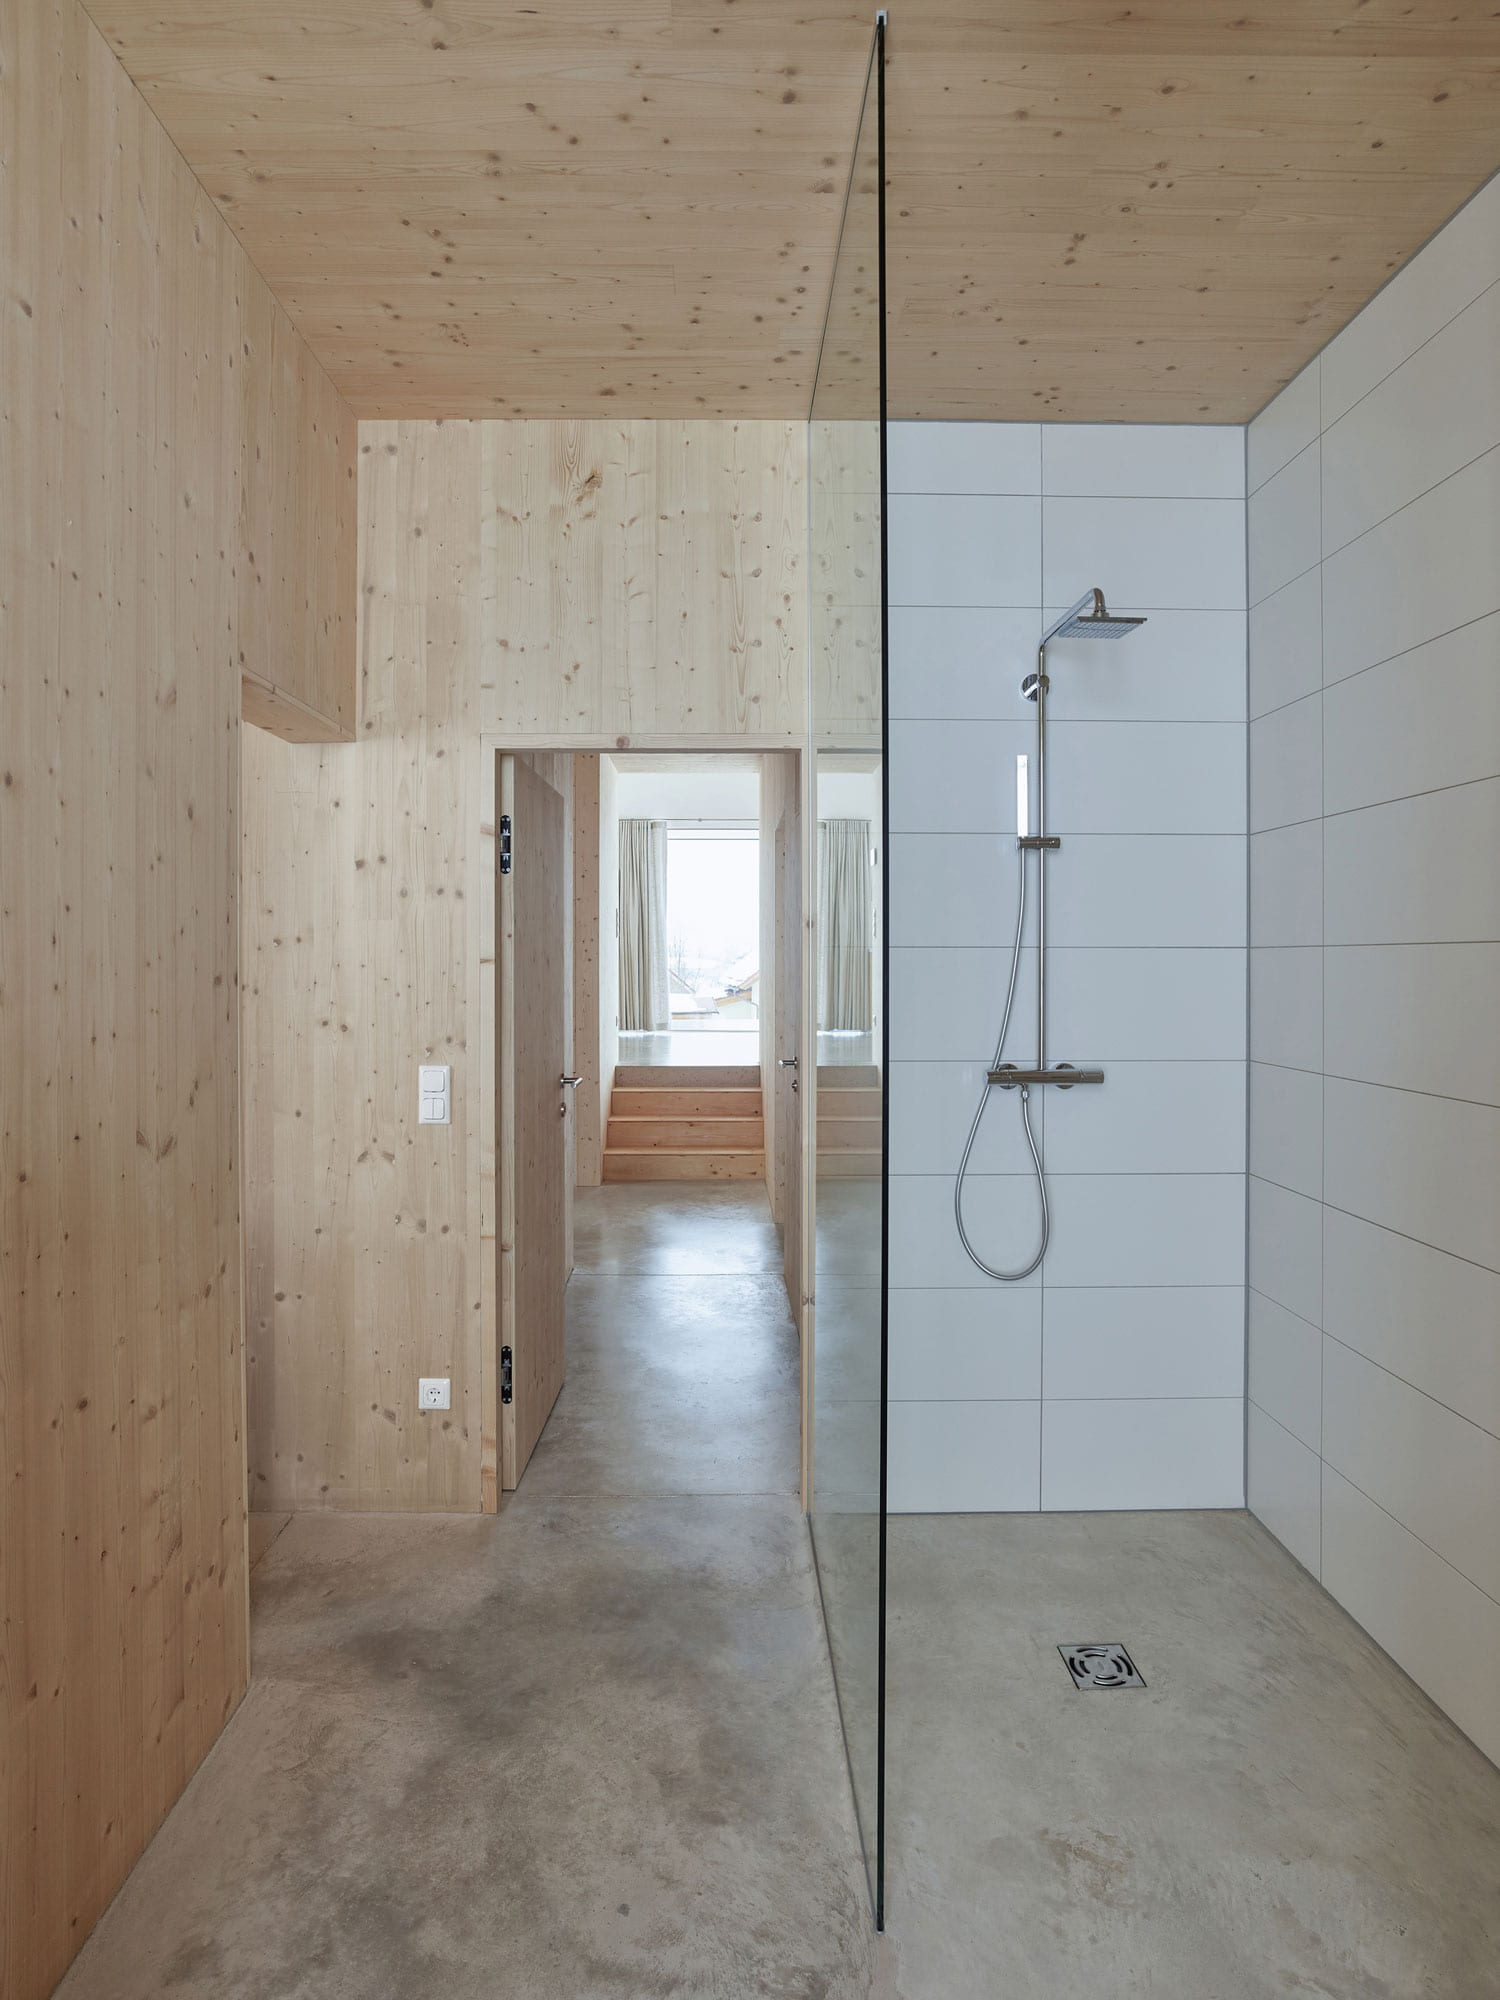 Gable House in Roßleithen, Austria by mia2/Architektur | Yellowtrace